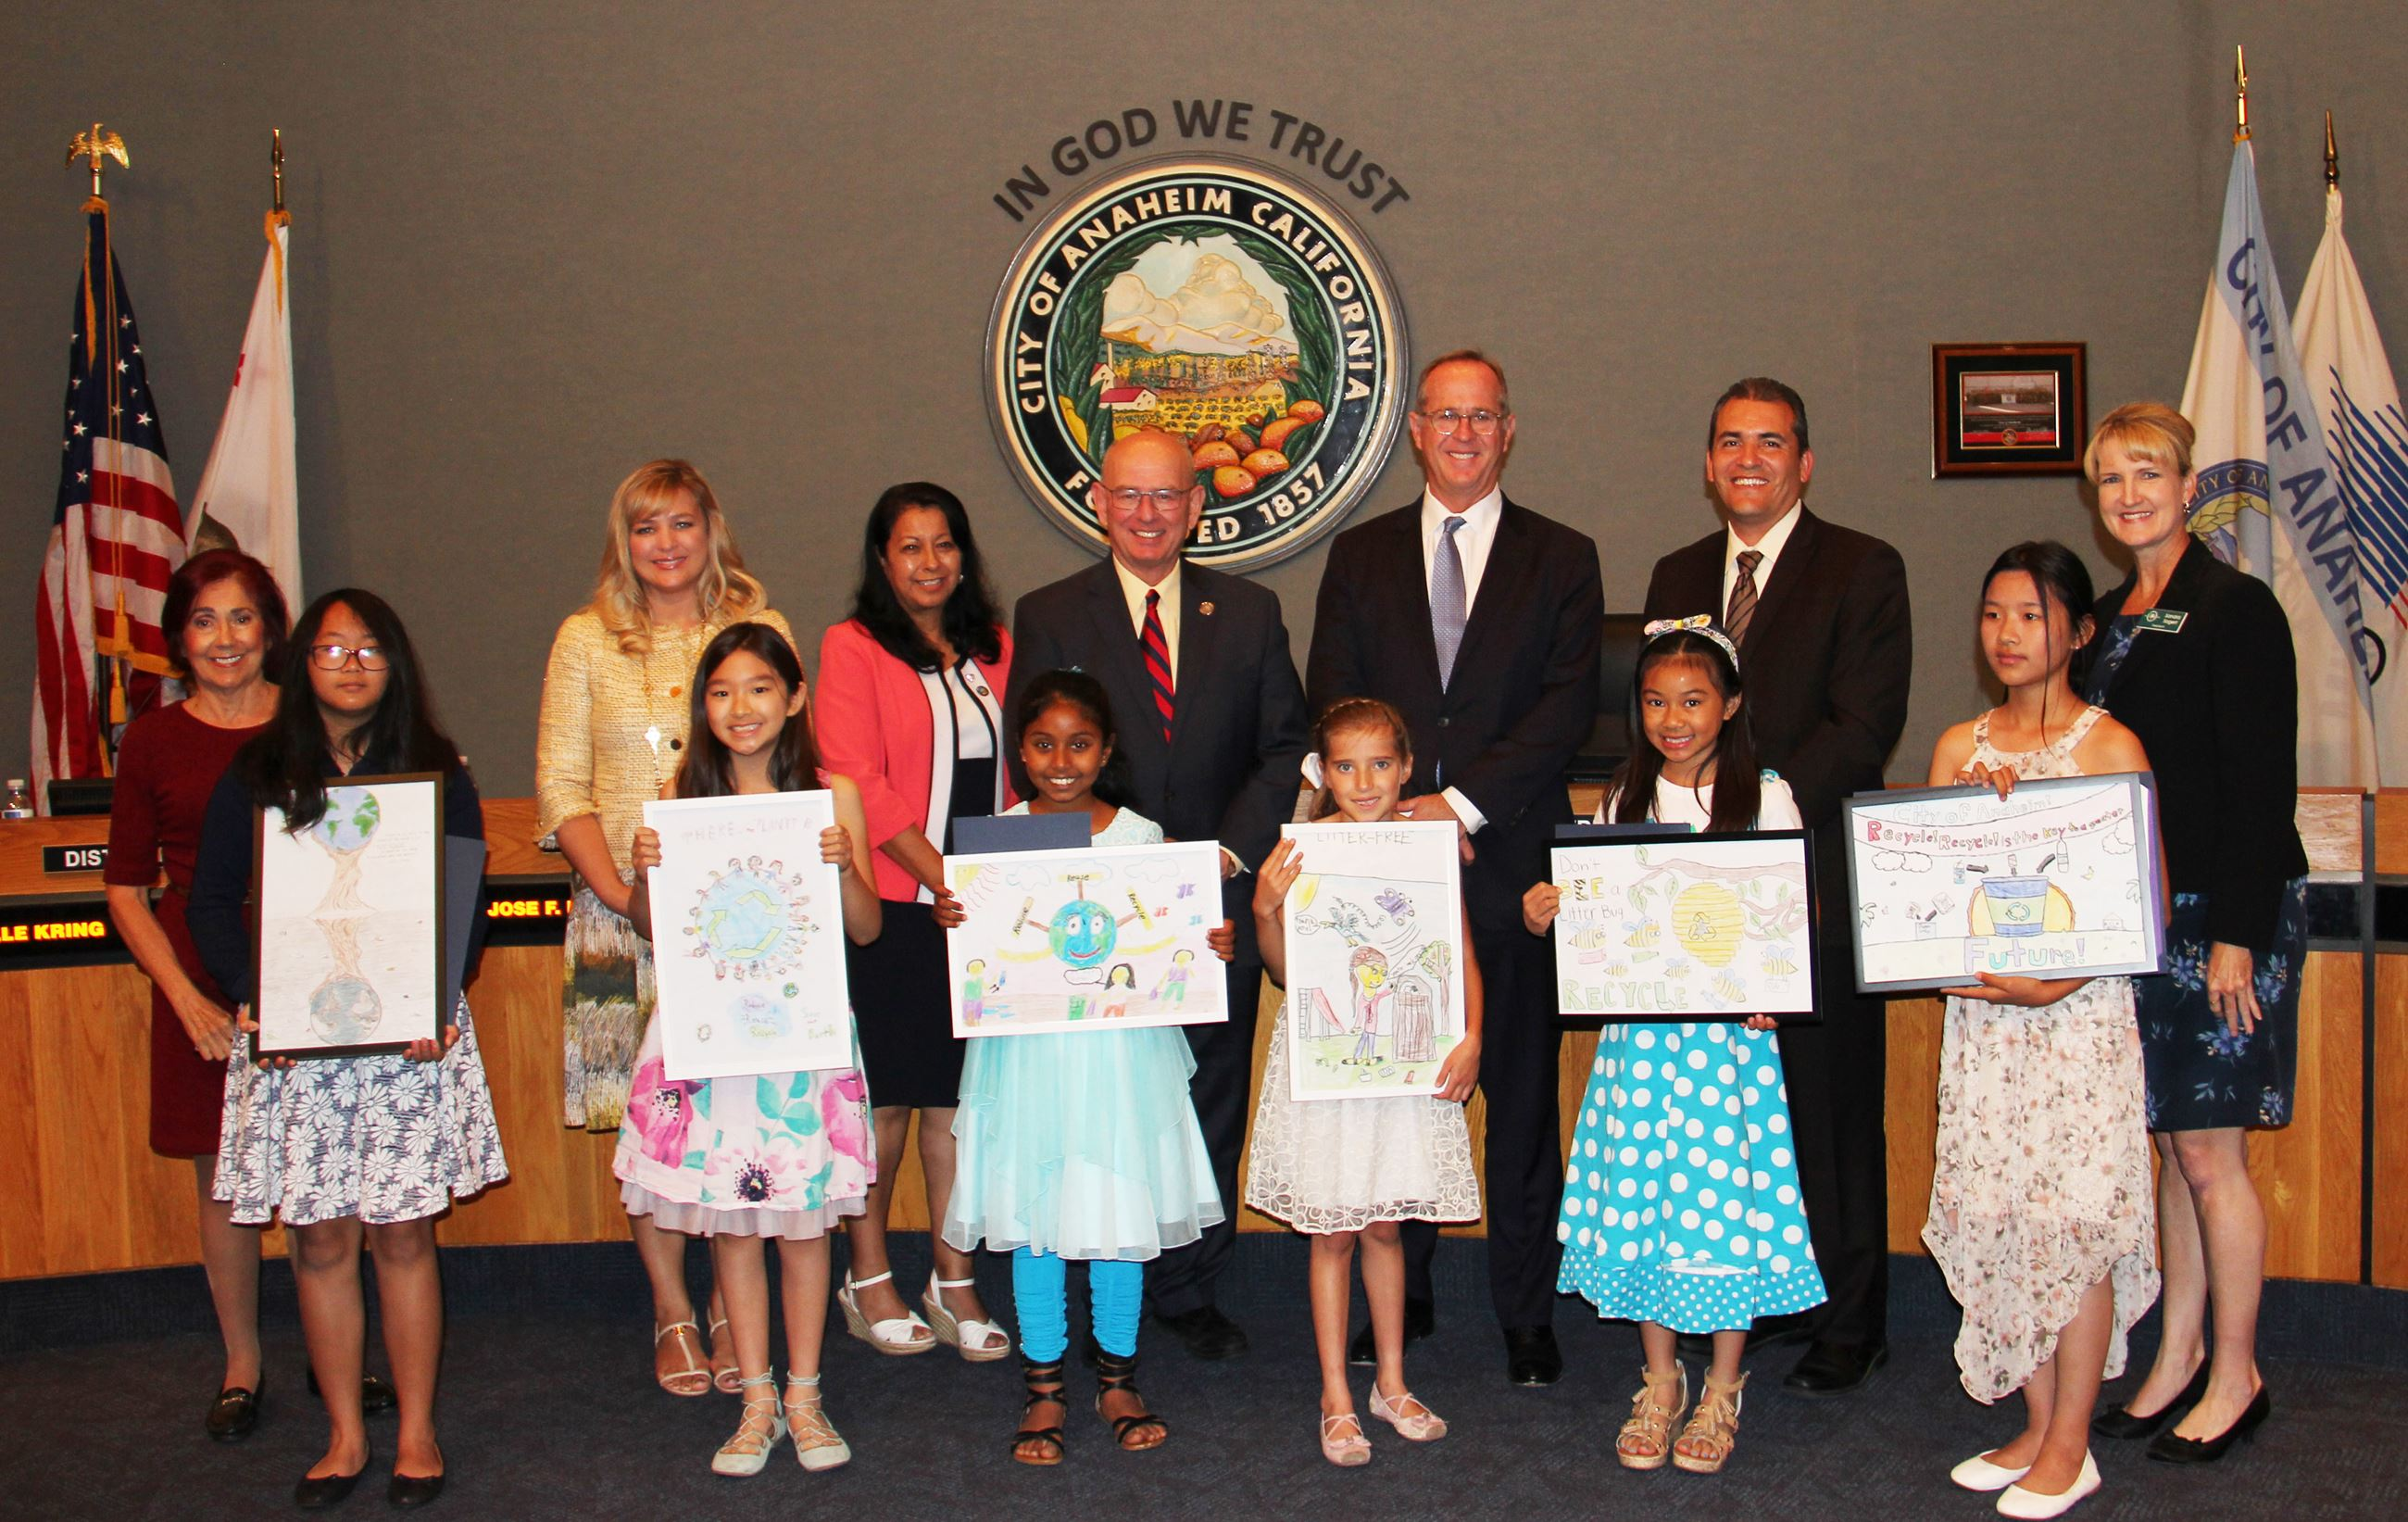 Anaheim Beautiful Community Pride Poster Contest Winners